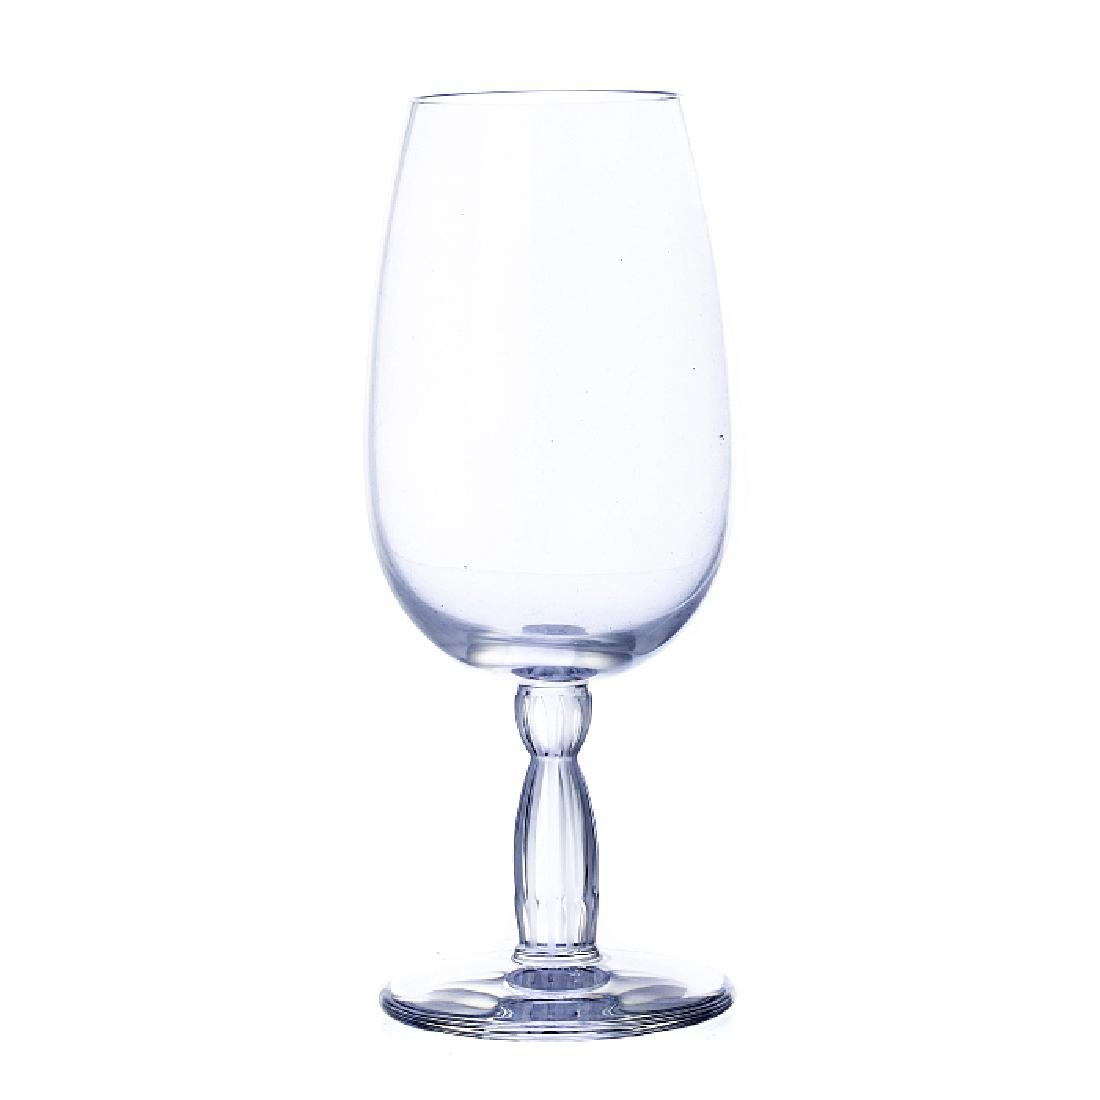 LALIQUE, FRANCE - Eleven Oporto glasses